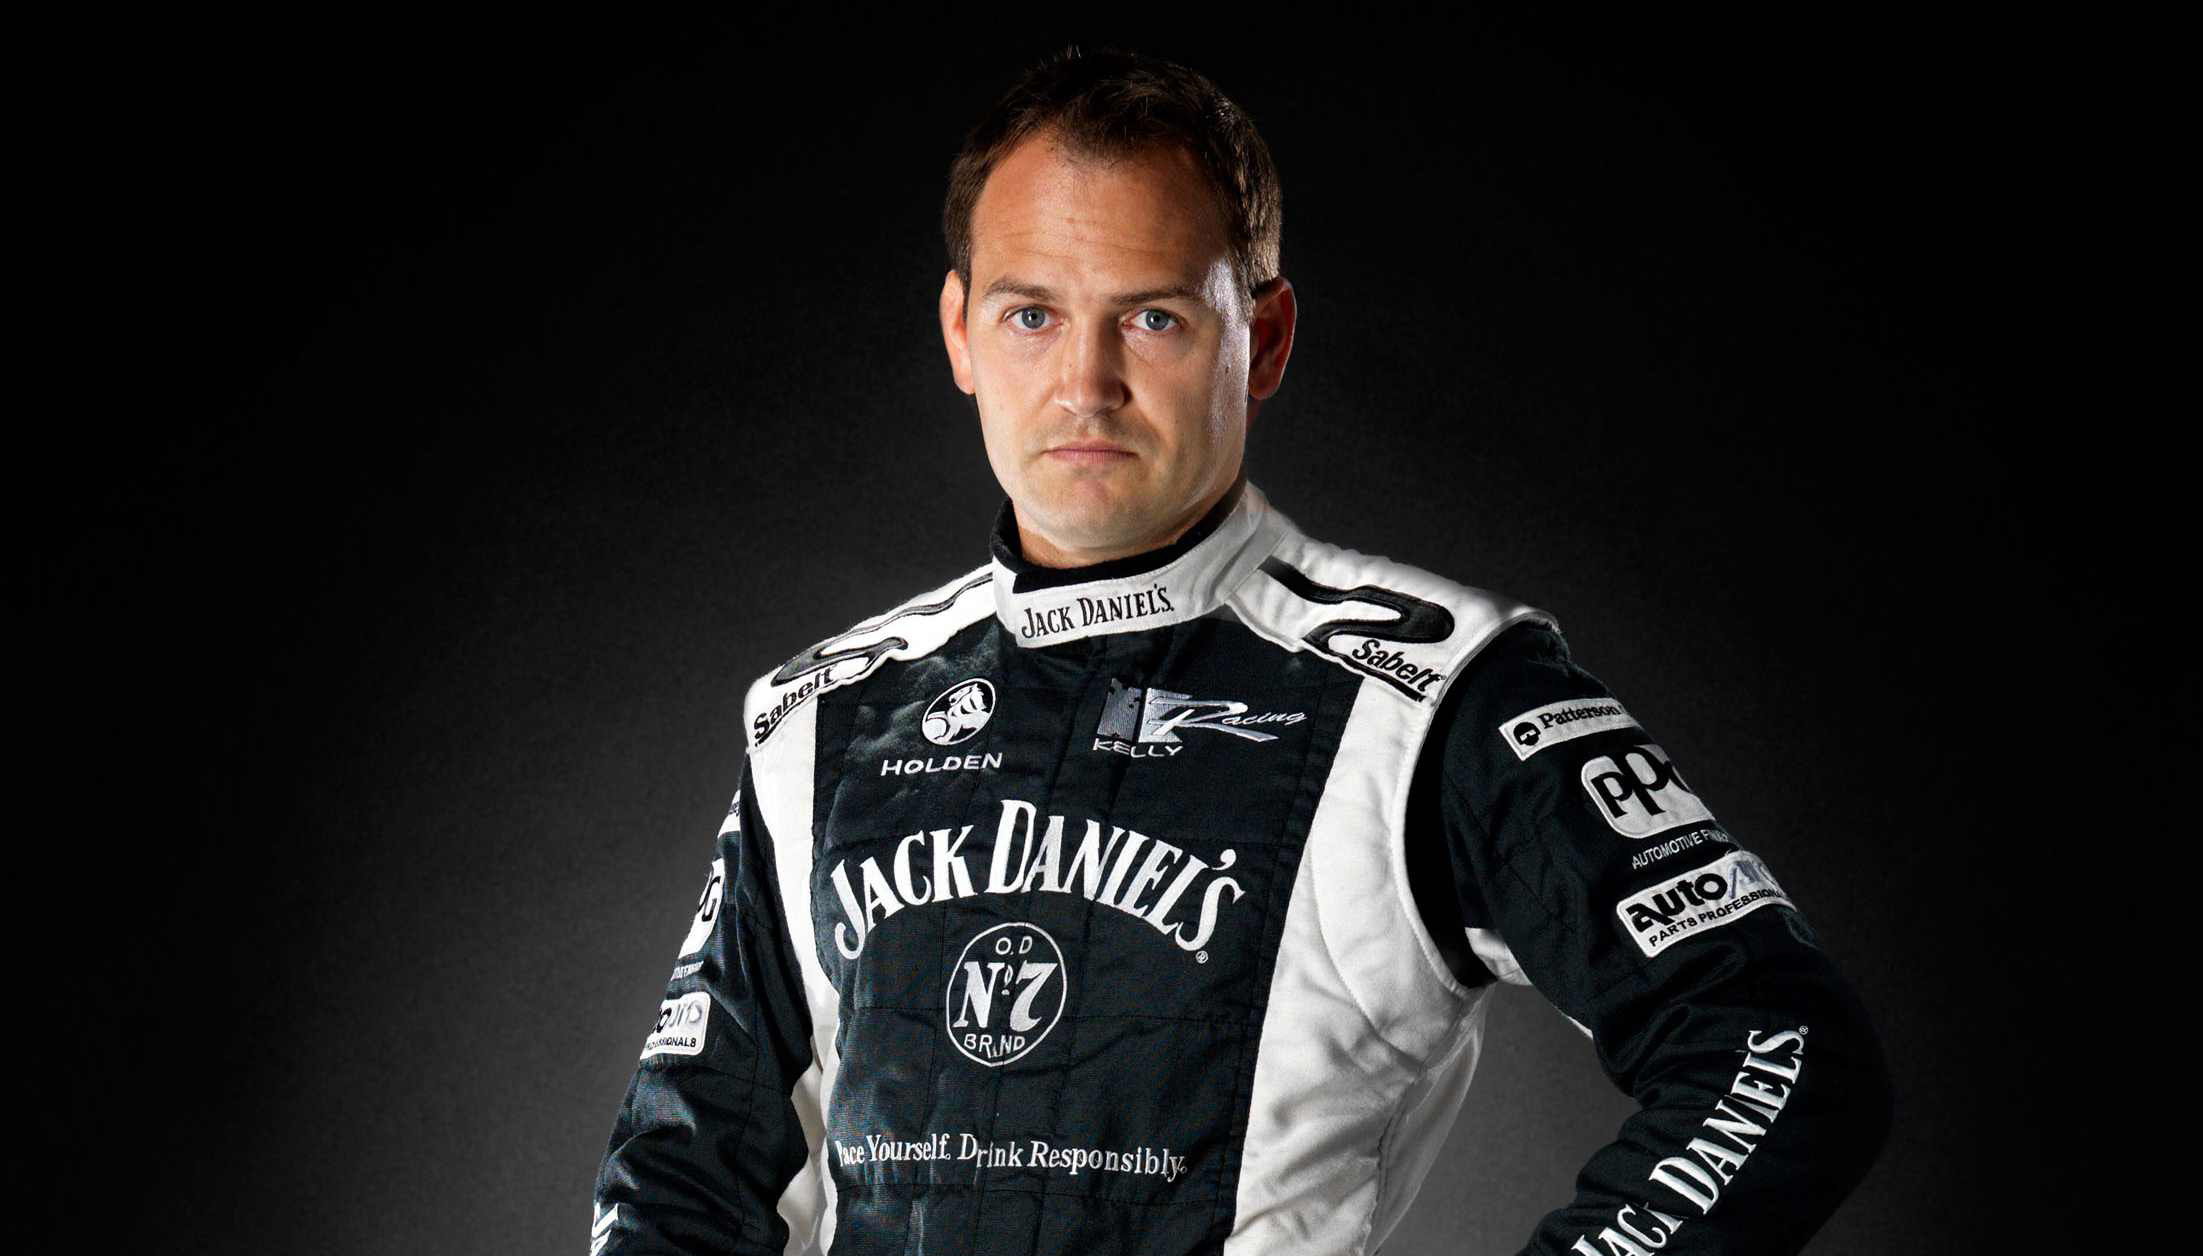 Ben Collins talks Project CARS 2, plus life as a stunt and racing driver